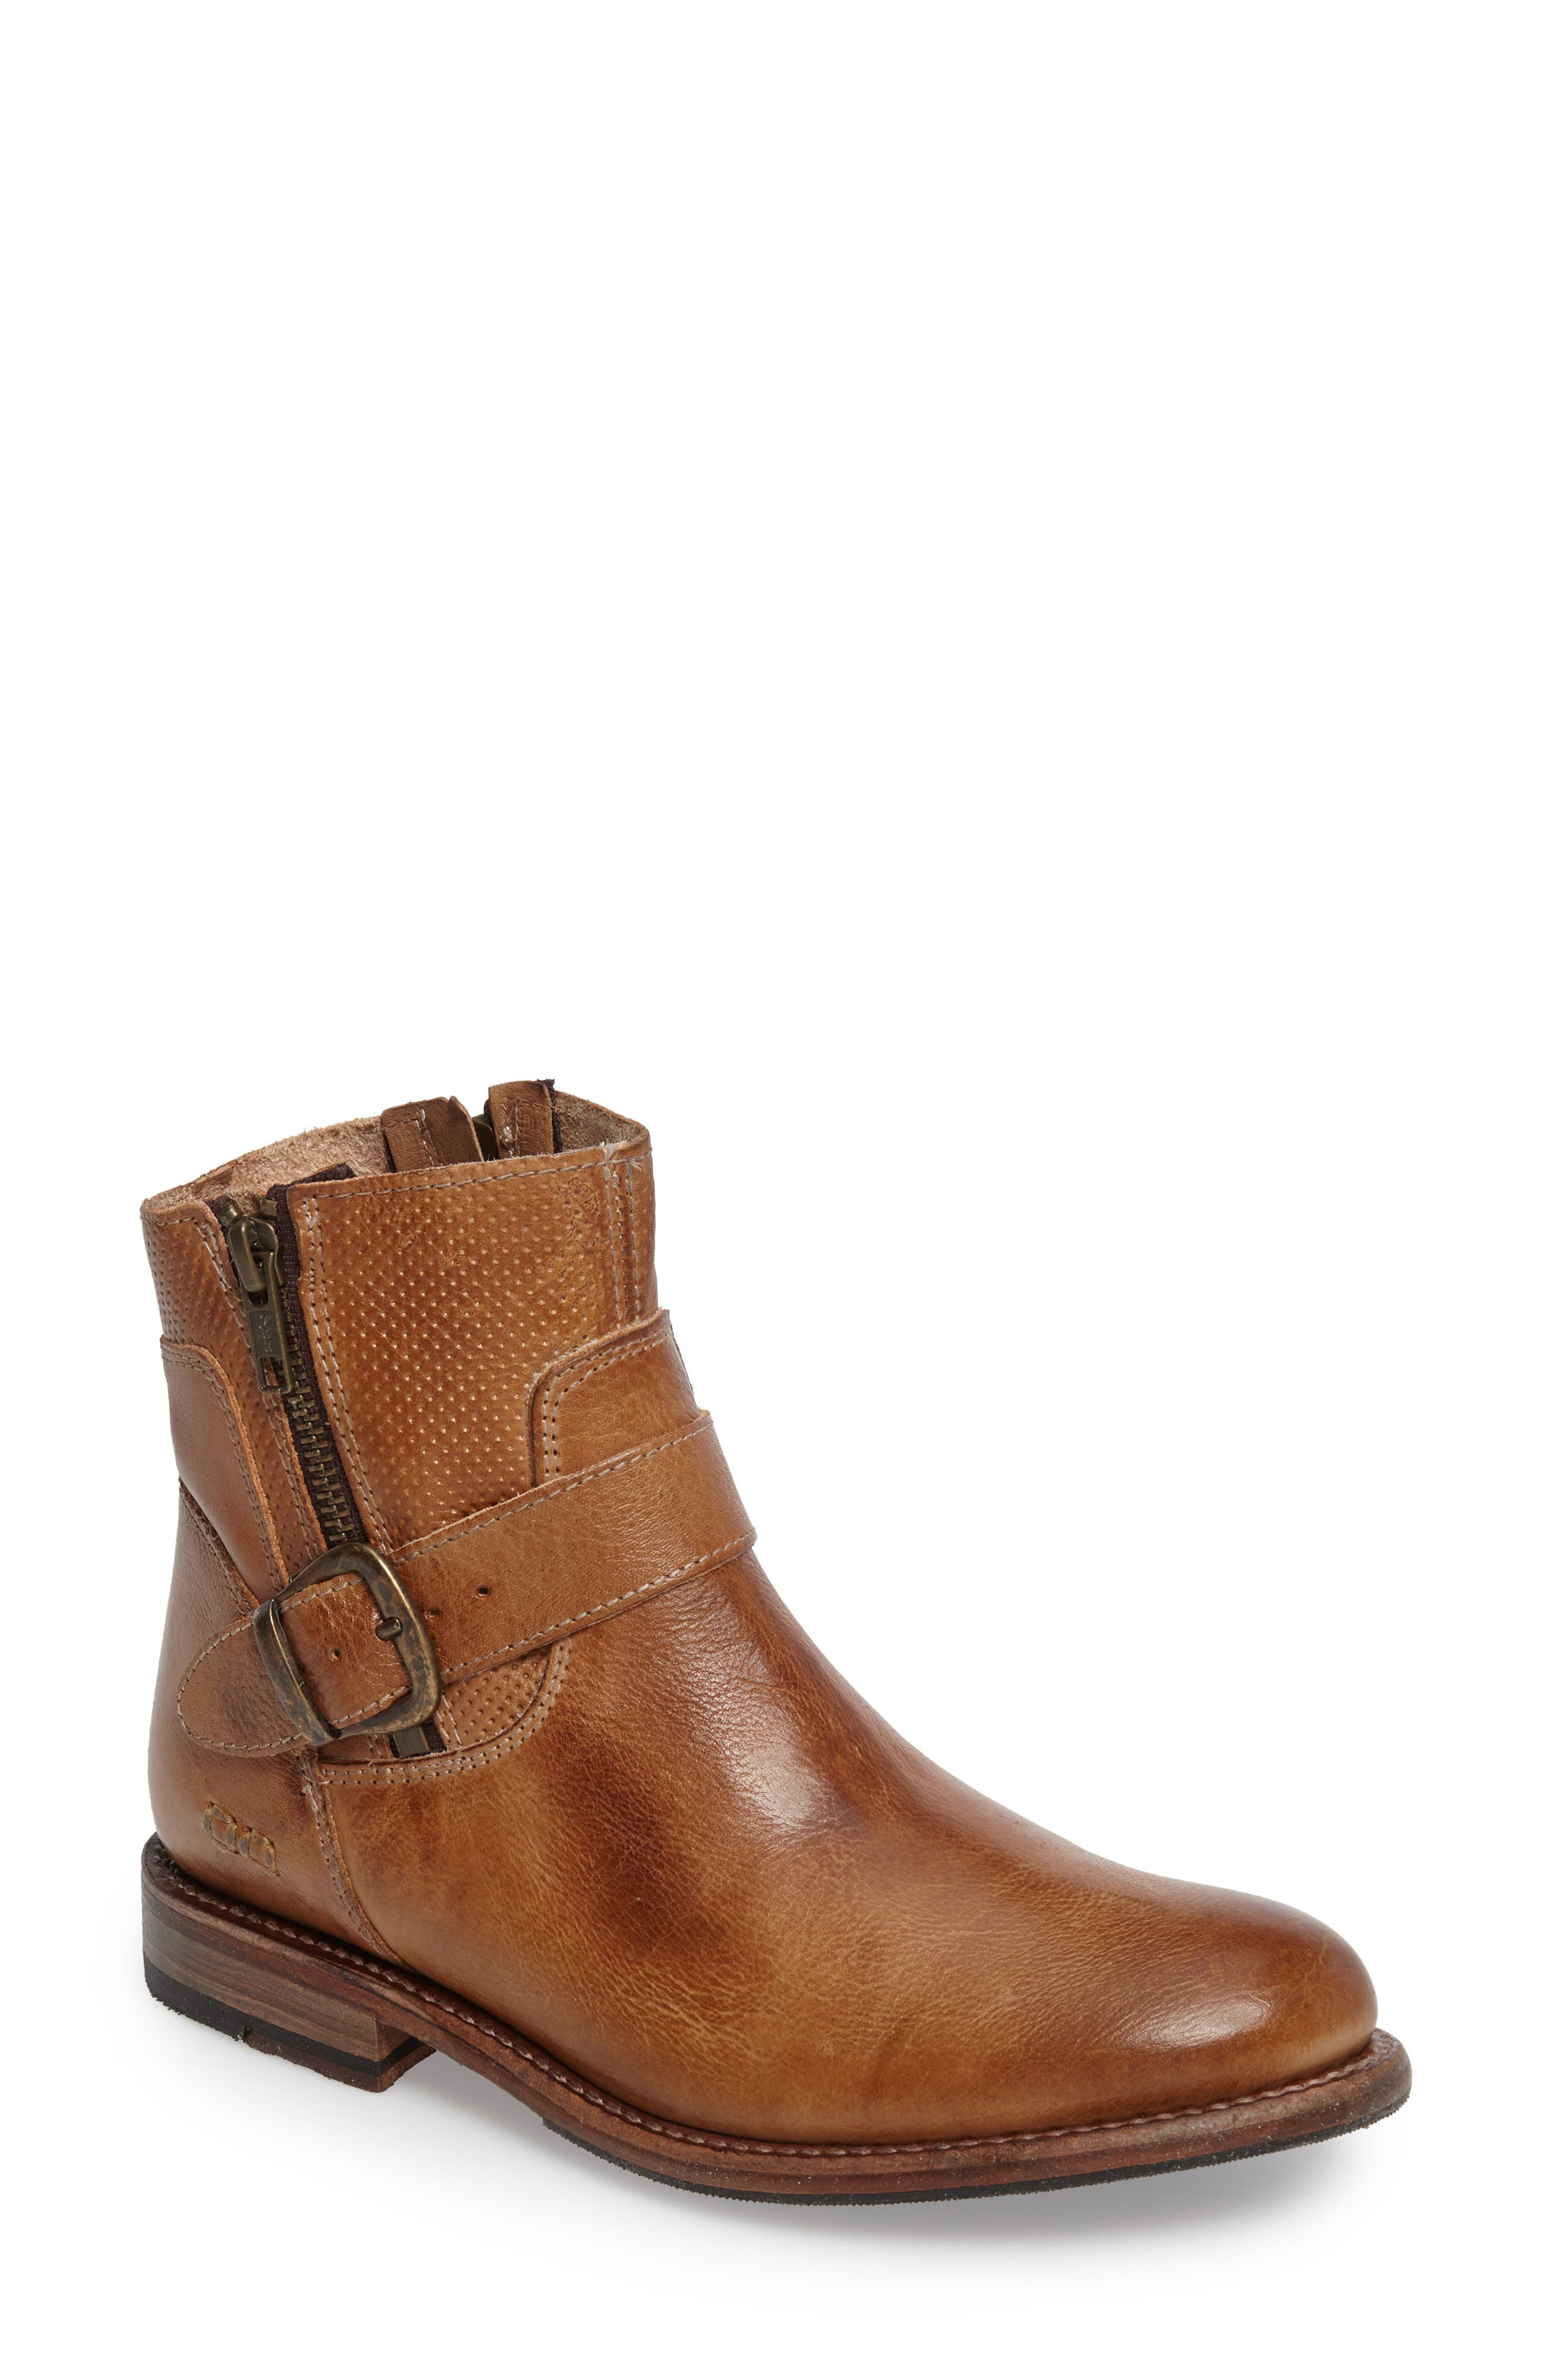 BED STU, Becca Buckle Boot, Main thumbnail 1, color, TAN RUSTIC LEATHER